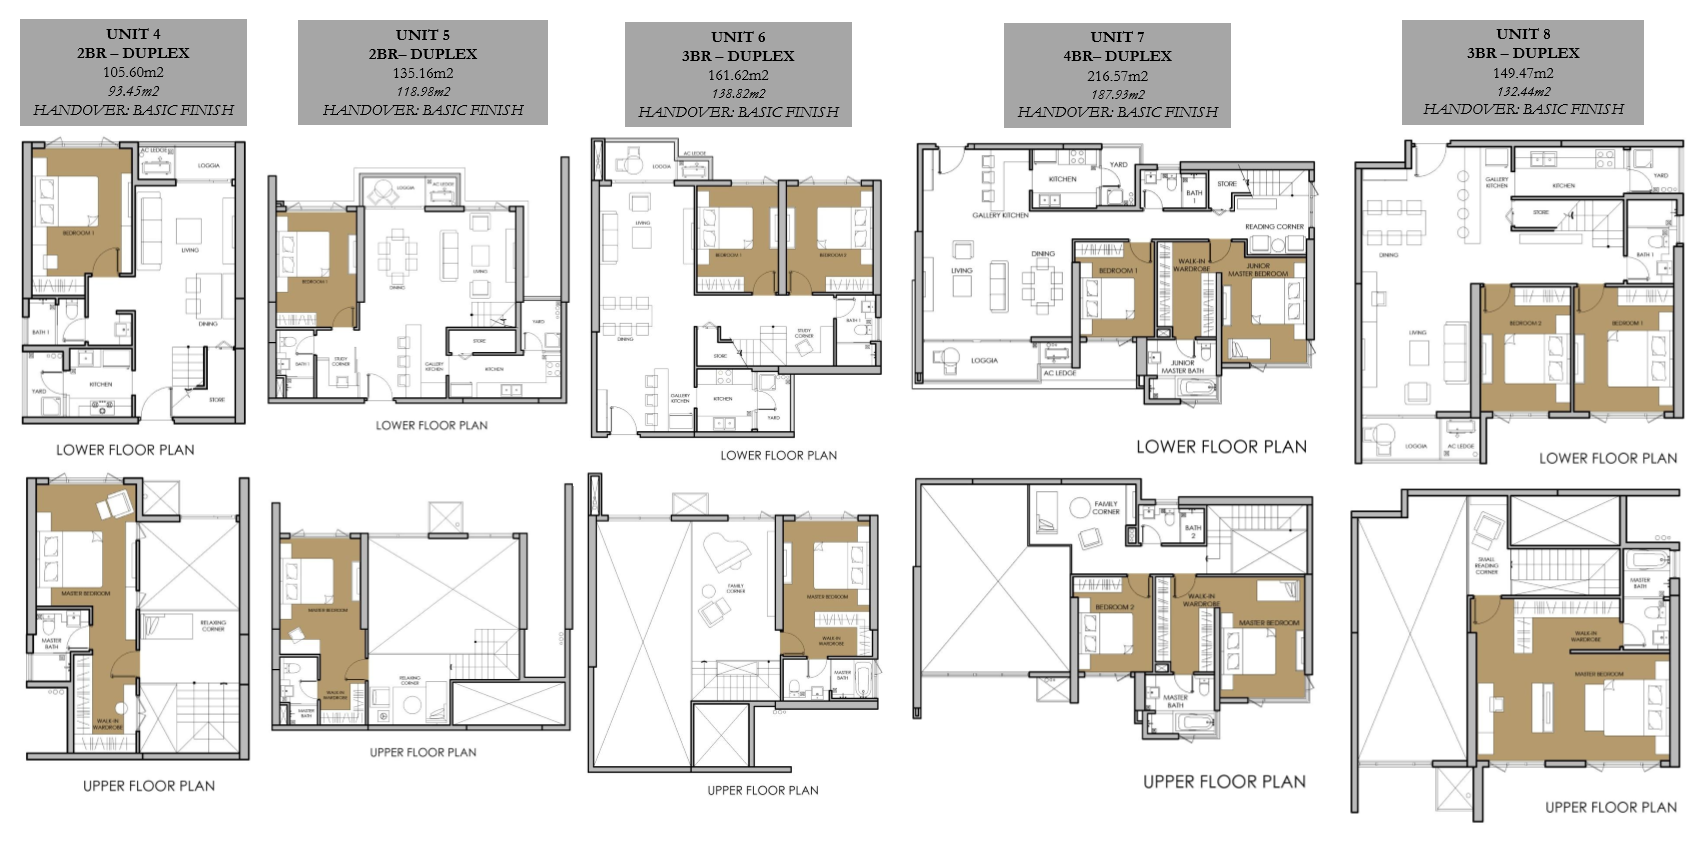 Vista Verde Orchid Tower Duplex Unit Floor Plan